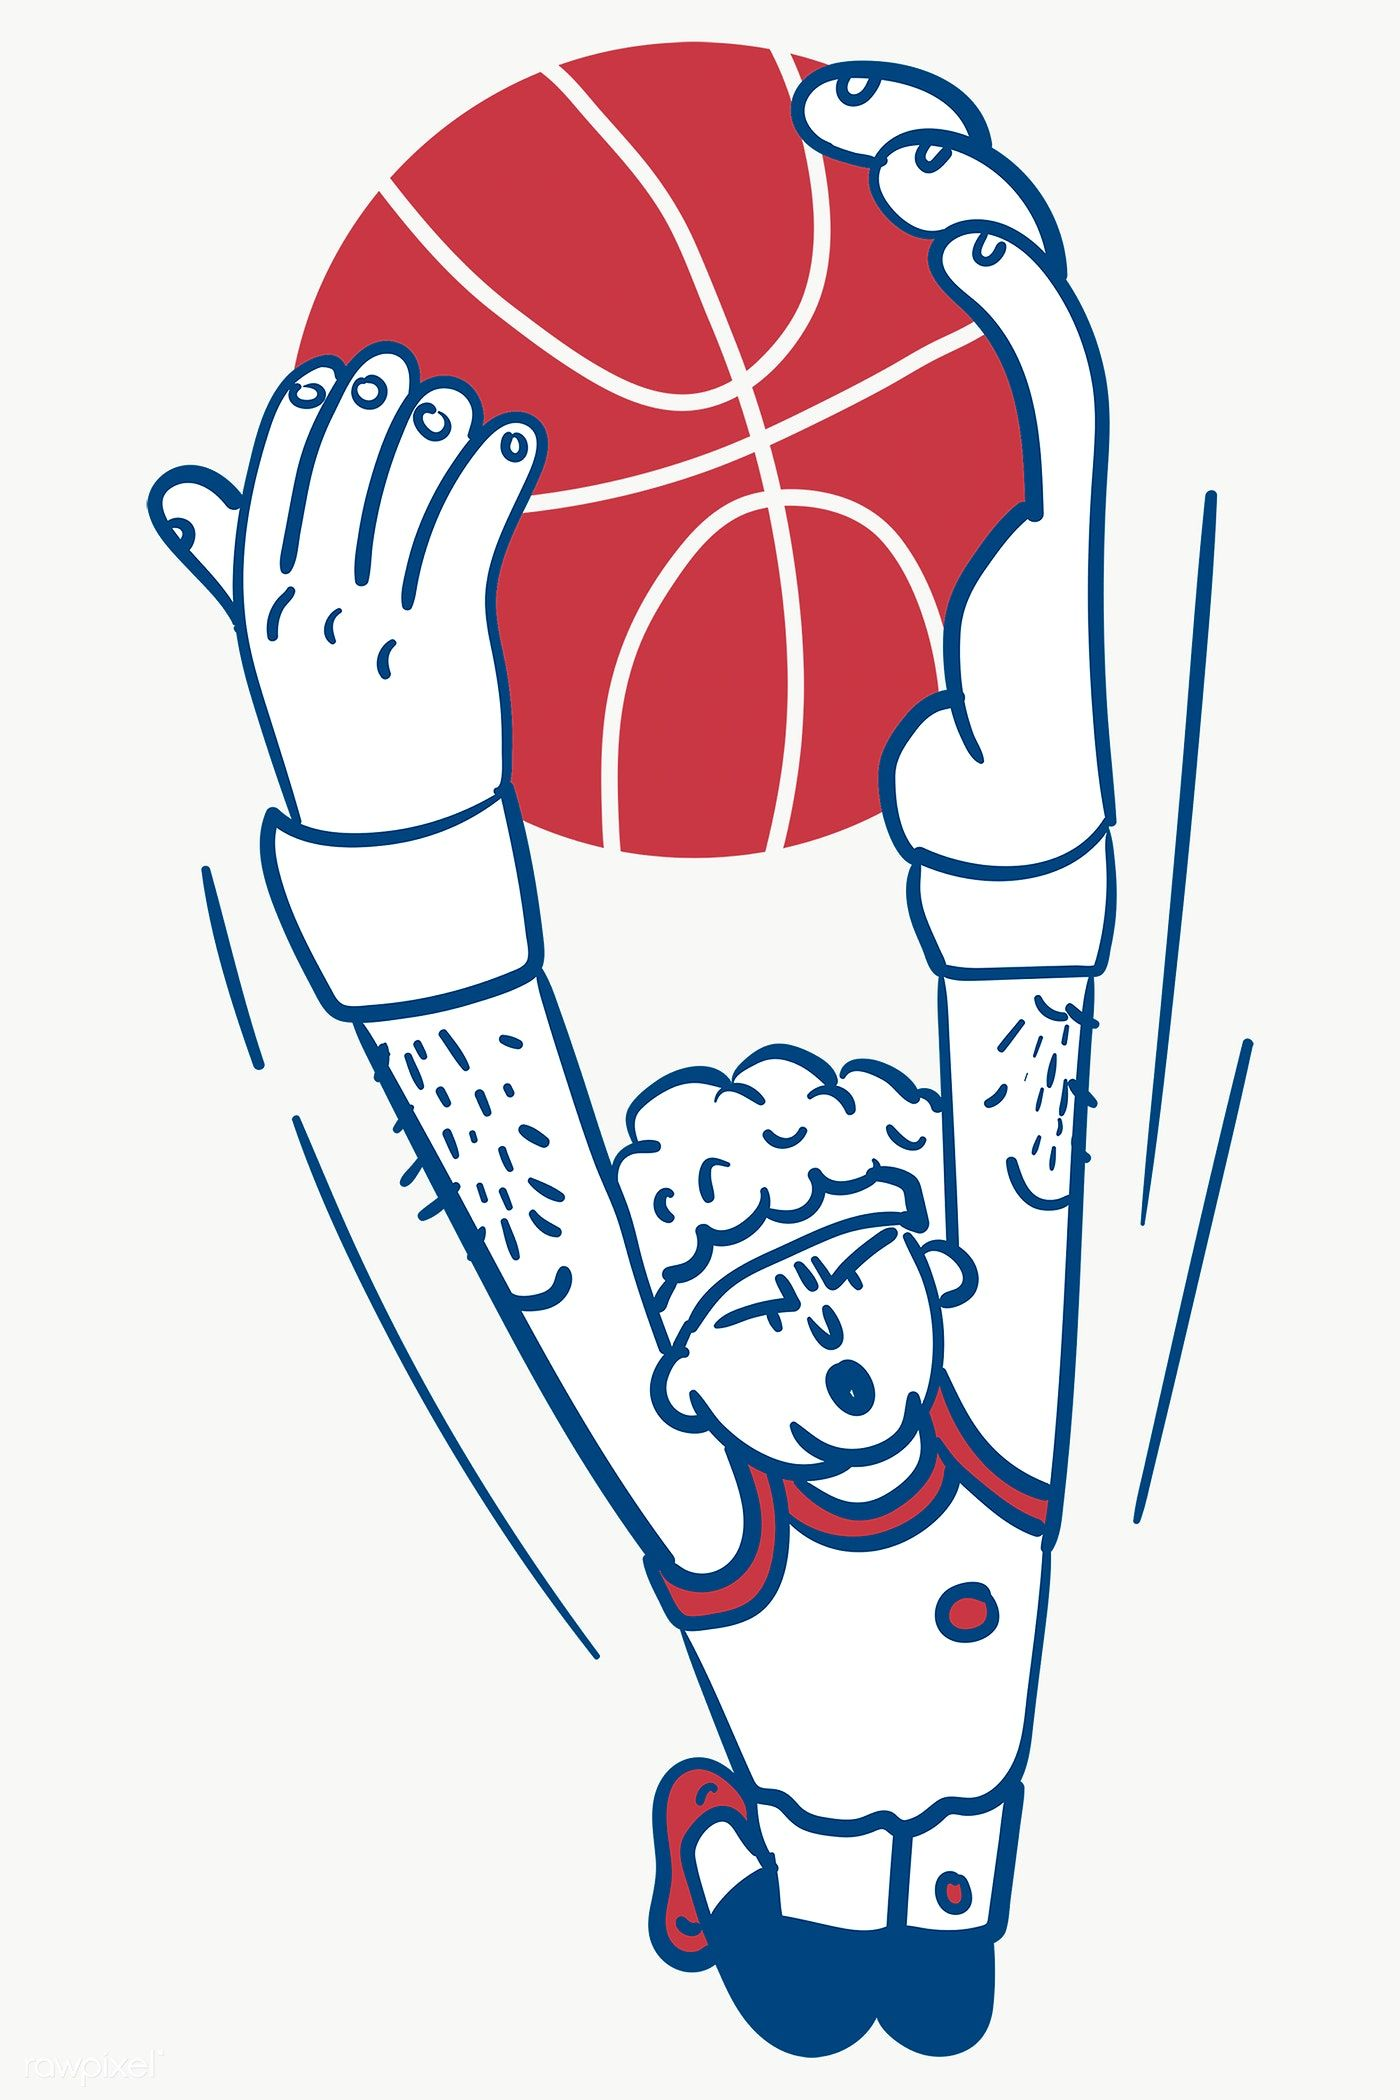 Basketball Player Shooting Transparent Png Free Image By Rawpixel Com Te Basketball Drawings Doodle Characters Teapot Drawing